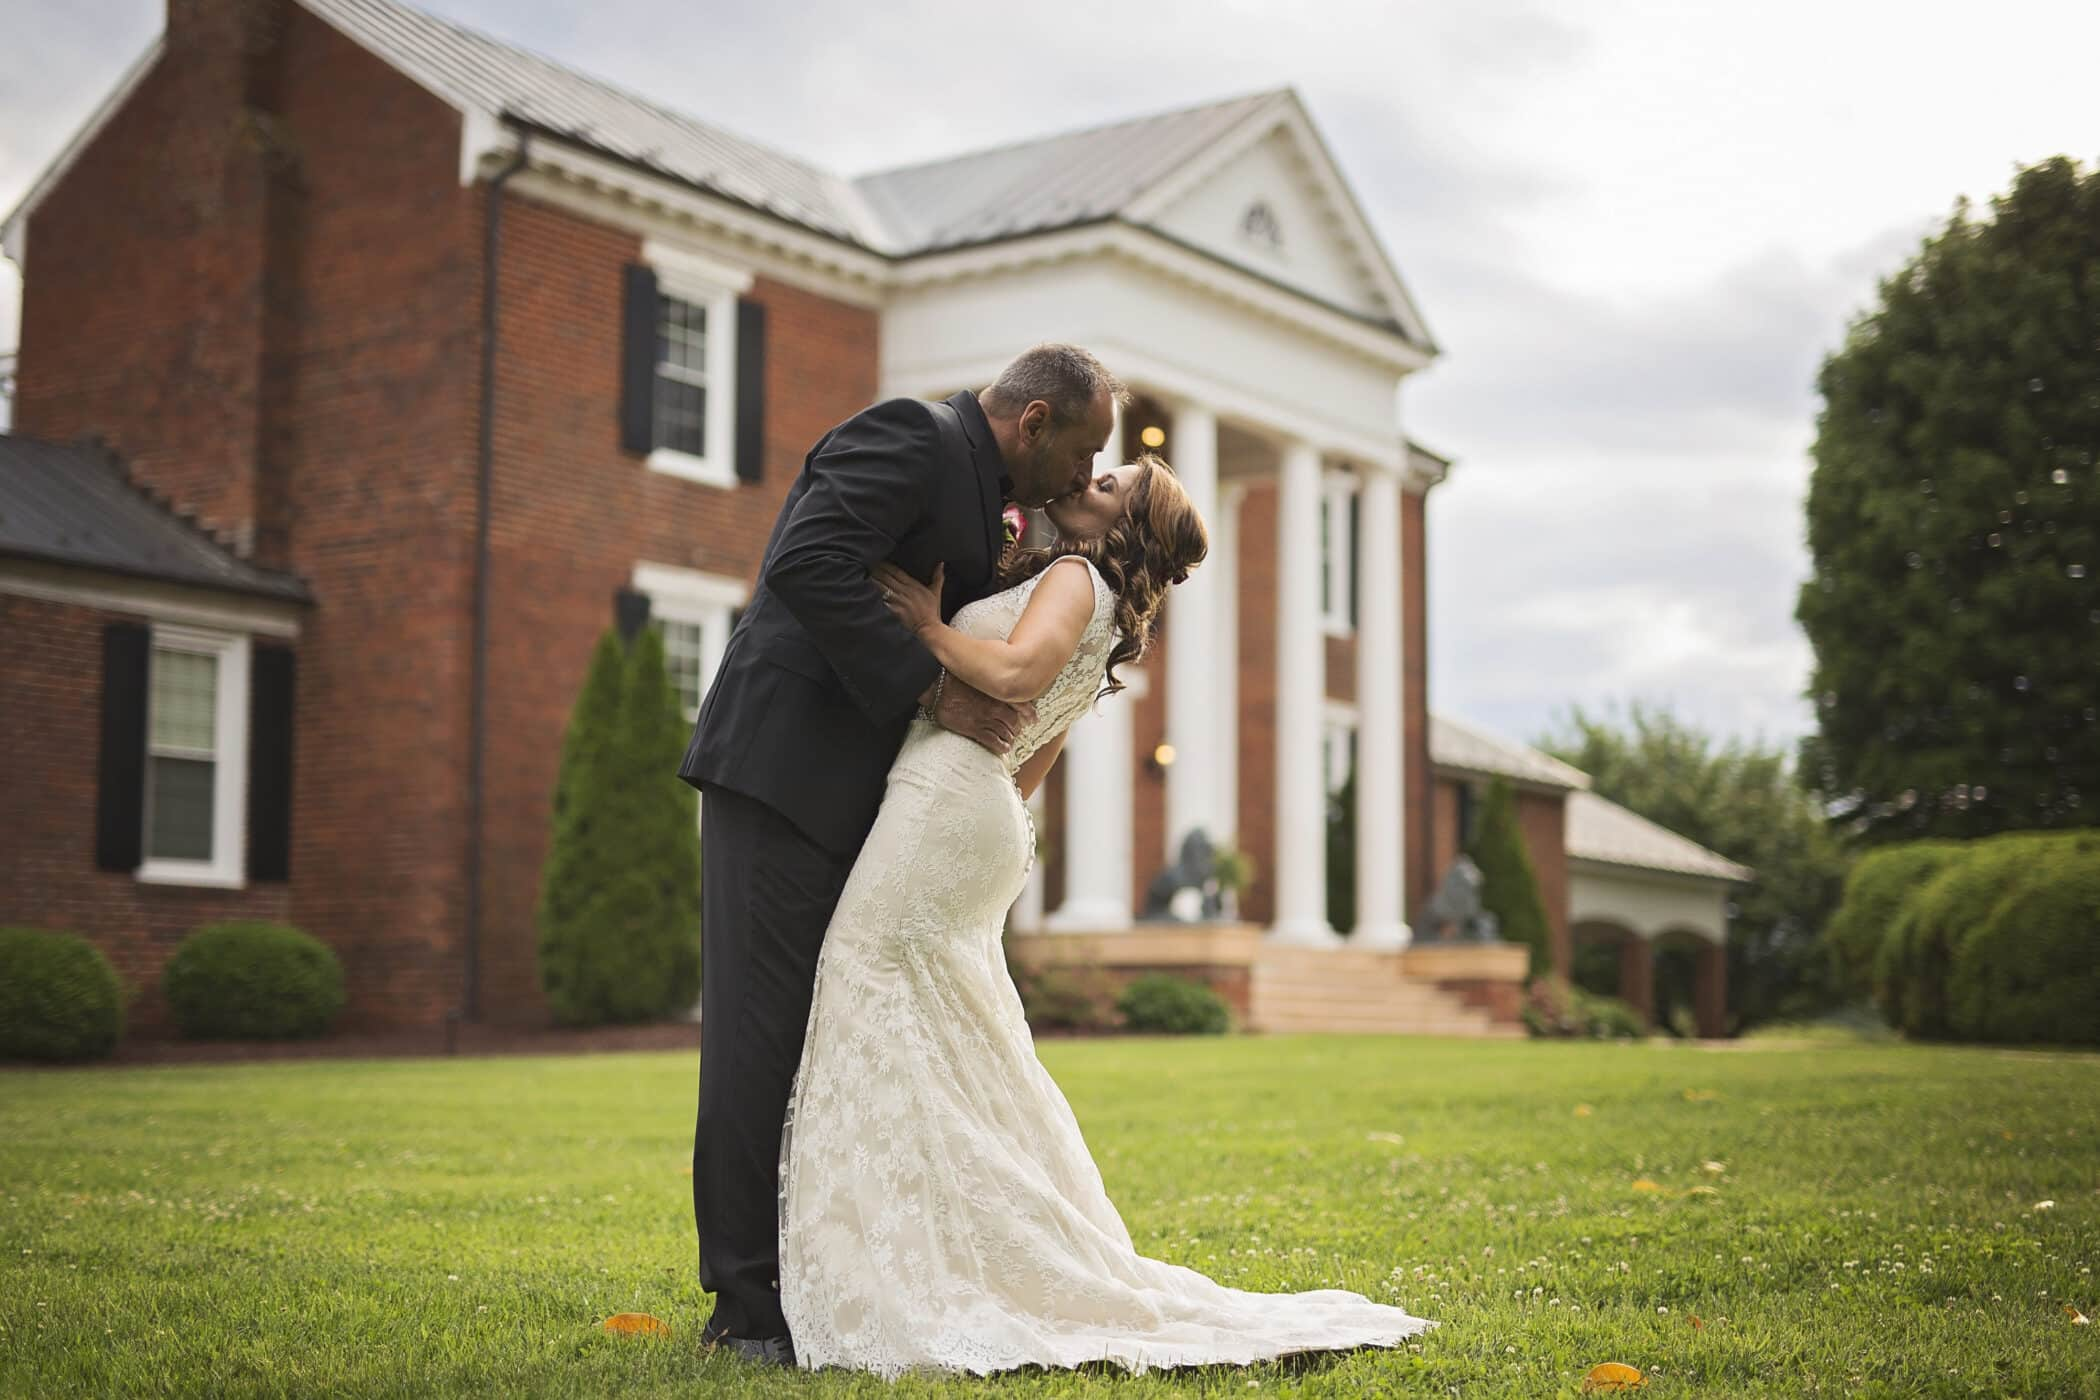 Selecting Your Virginia Wedding Venue | Entwined Events | Venue: West Manor Estate in Forest, VA | Photo Credit: Laura Bryan Photography